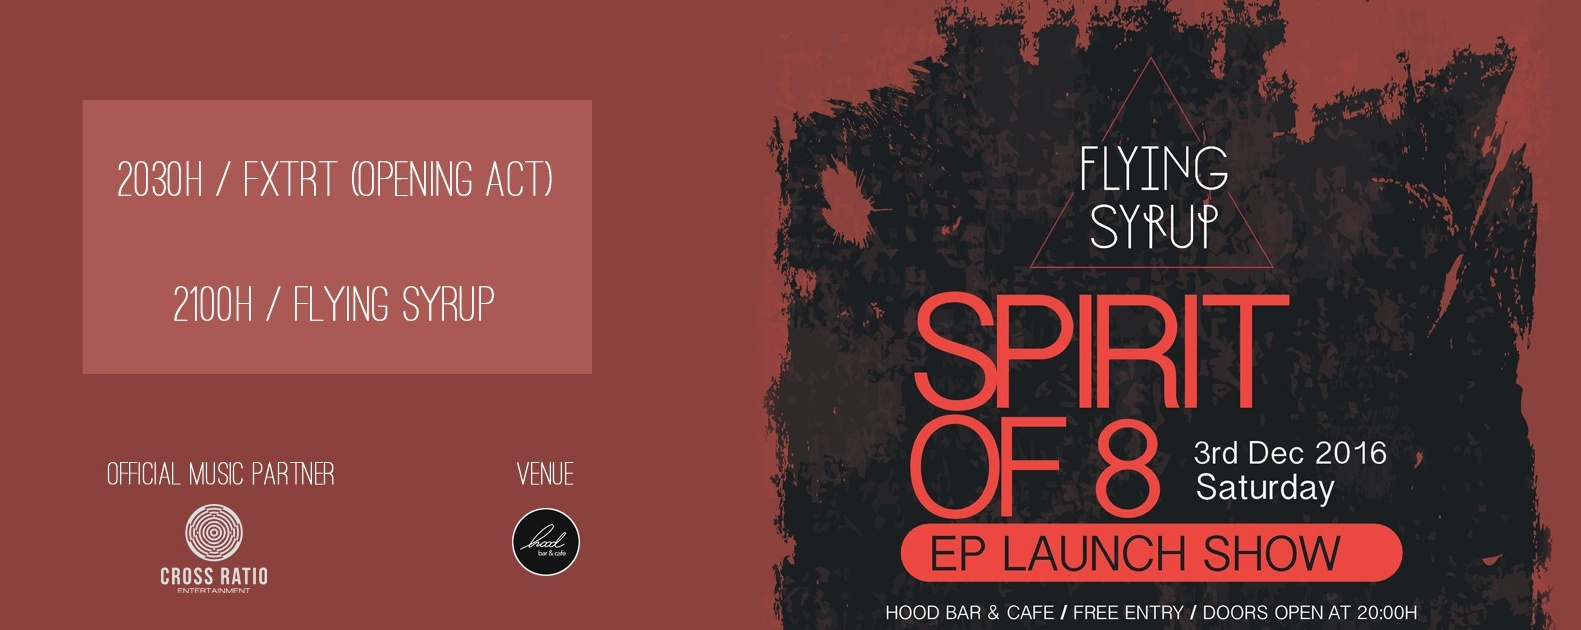 Flying Syrup - Spirit of 8 (EP Launch)